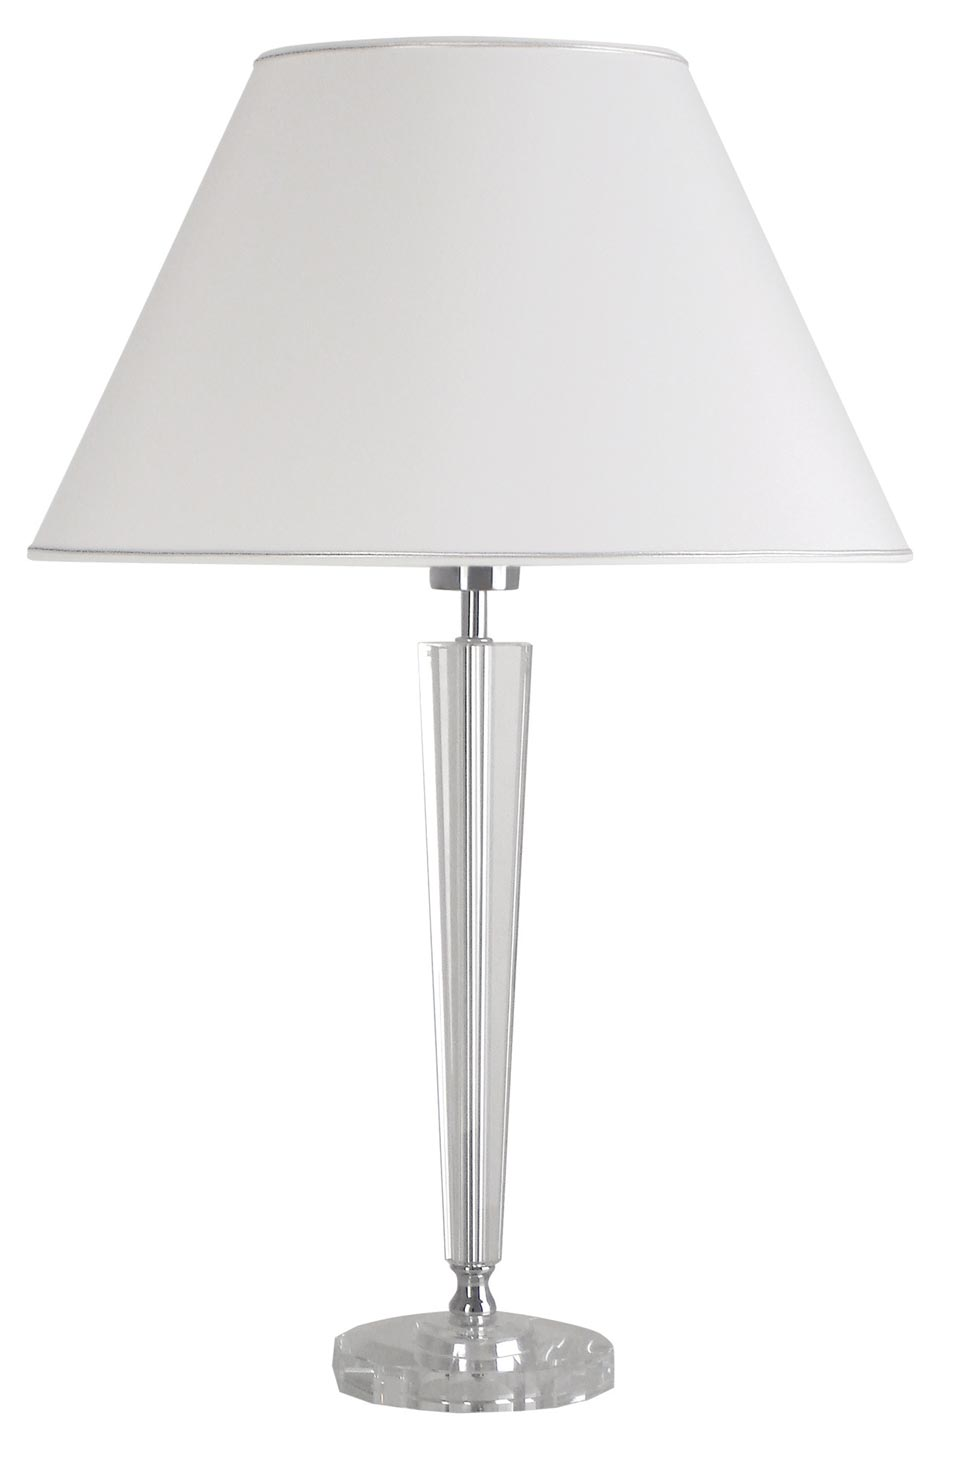 Henola B optical glass table lamp and white lampshade. Le Dauphin.